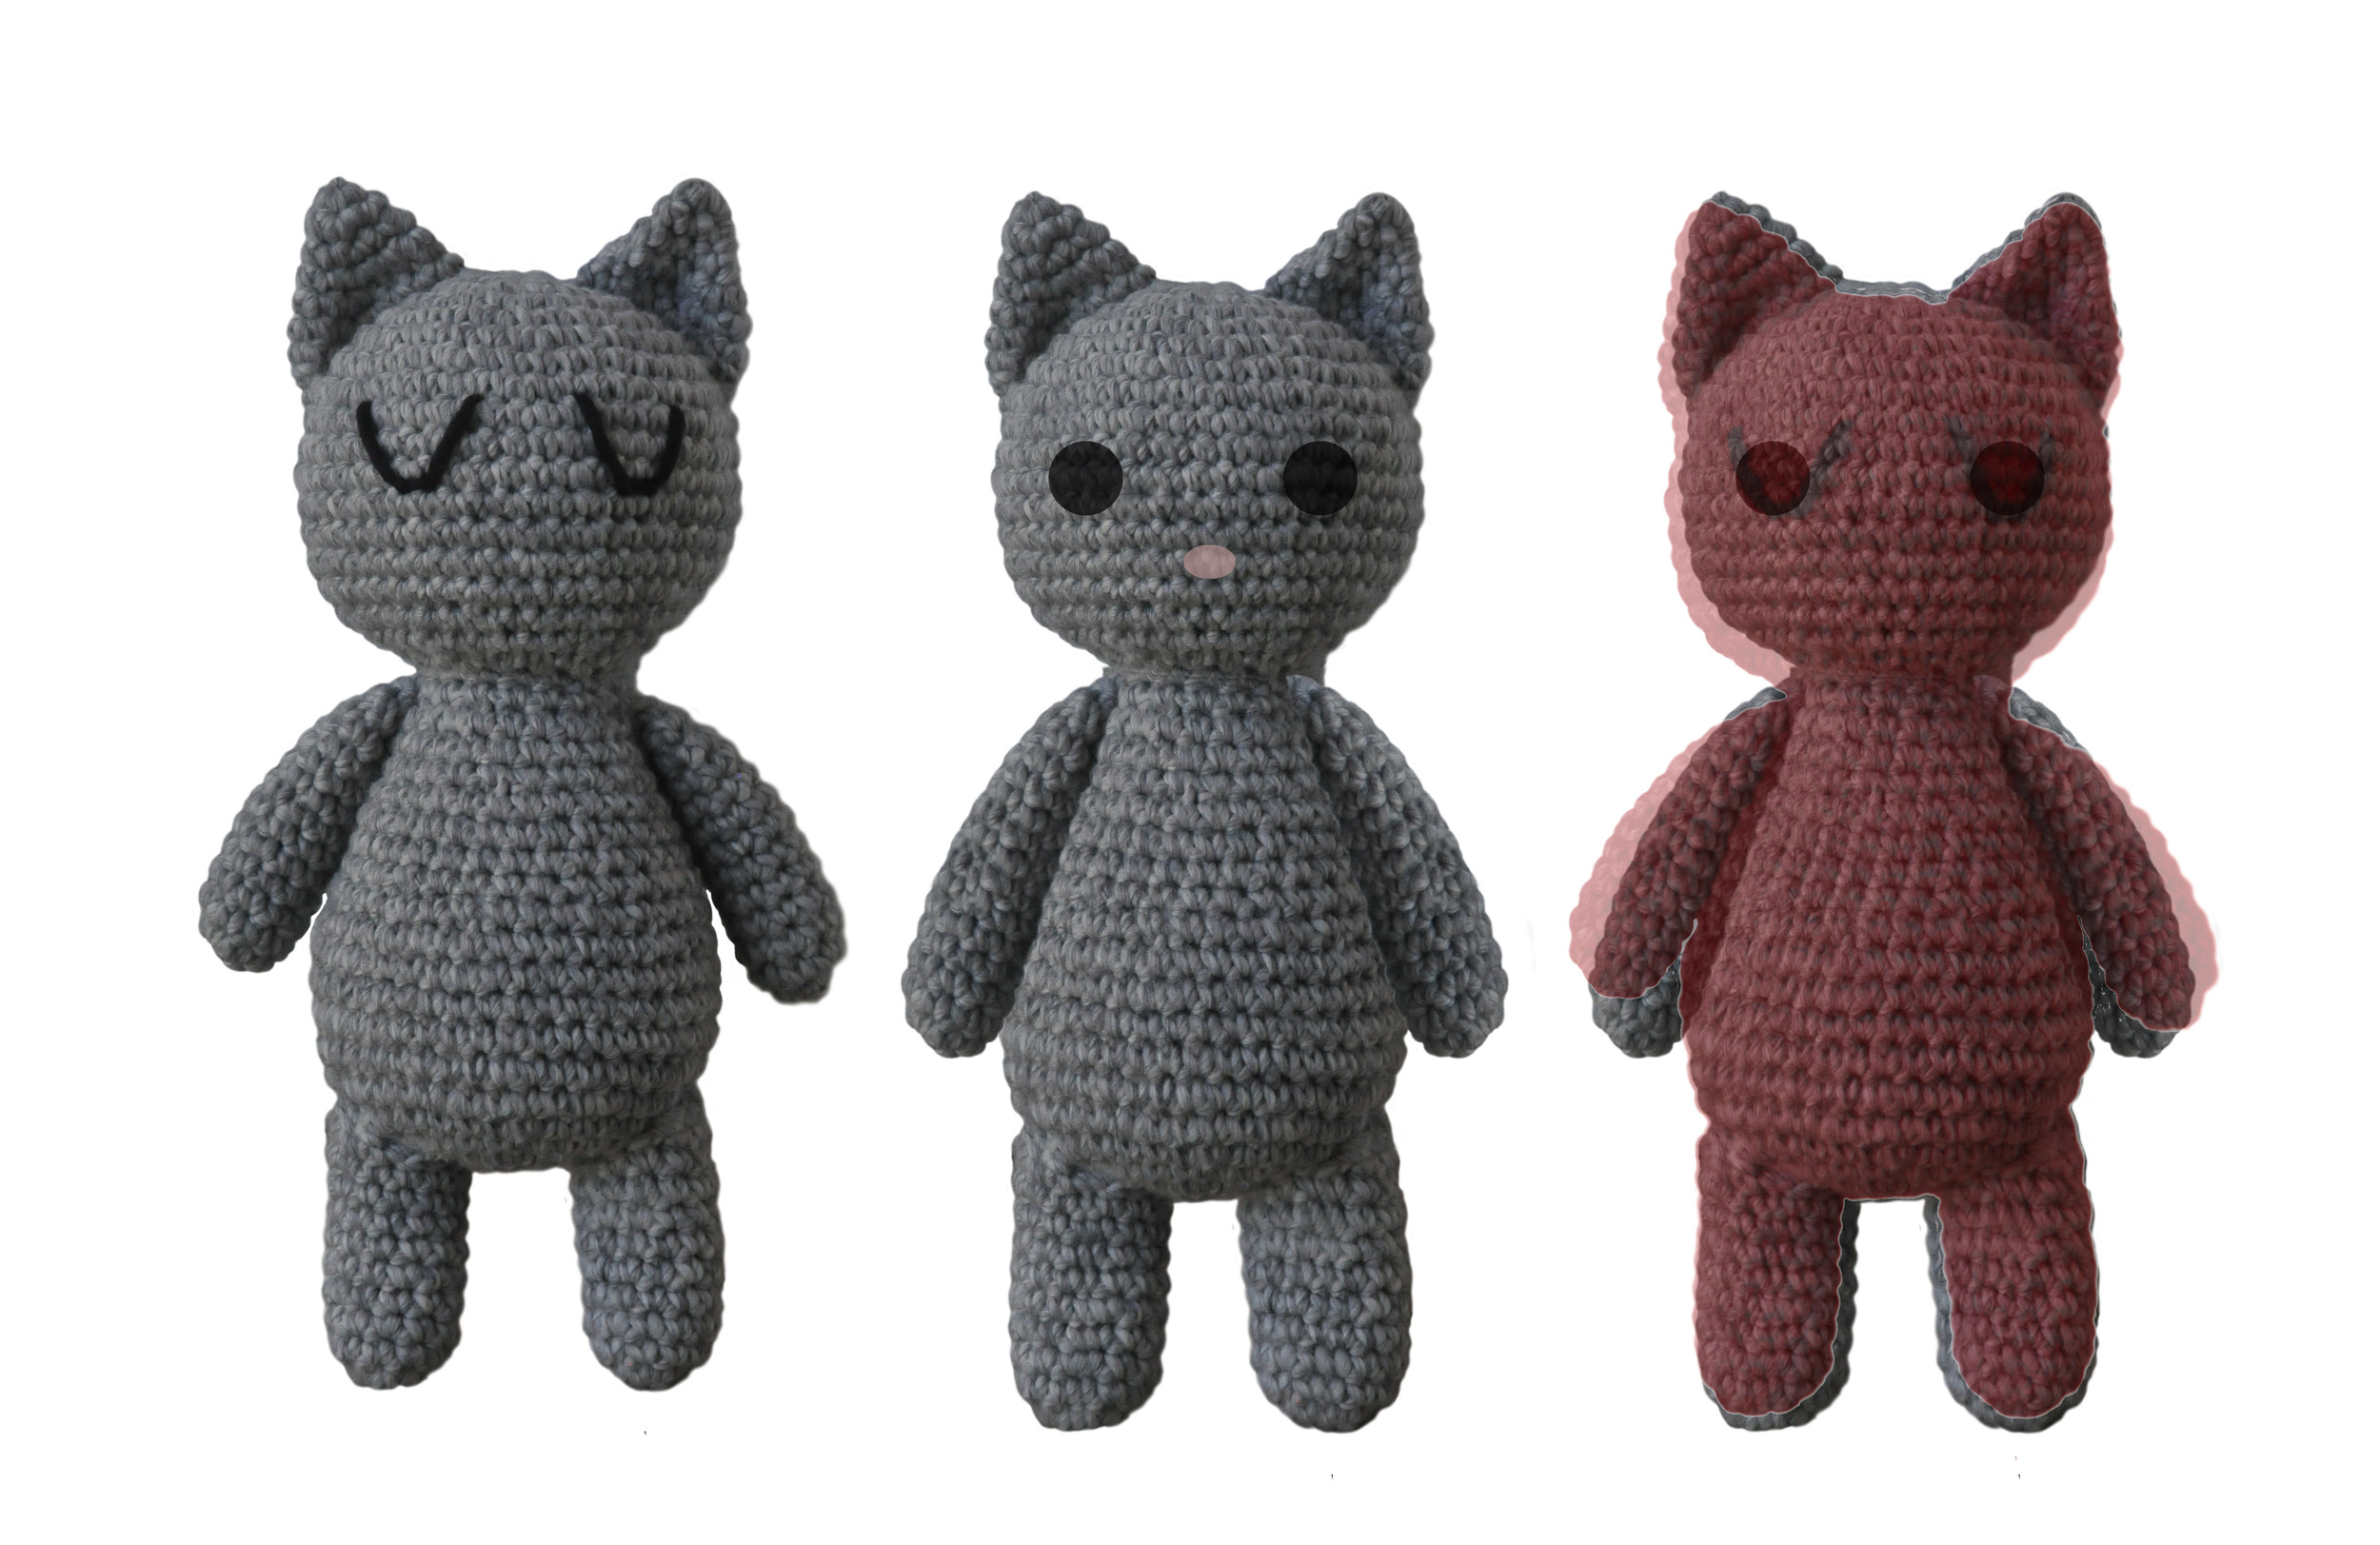 Here I am using the computer to try to work my way closer to the shapes I want. Crocheting is completely unlike anything I've done before but I am enjoying it. I know if Bunny were still alive she'd be working on this, so I will keep at it.